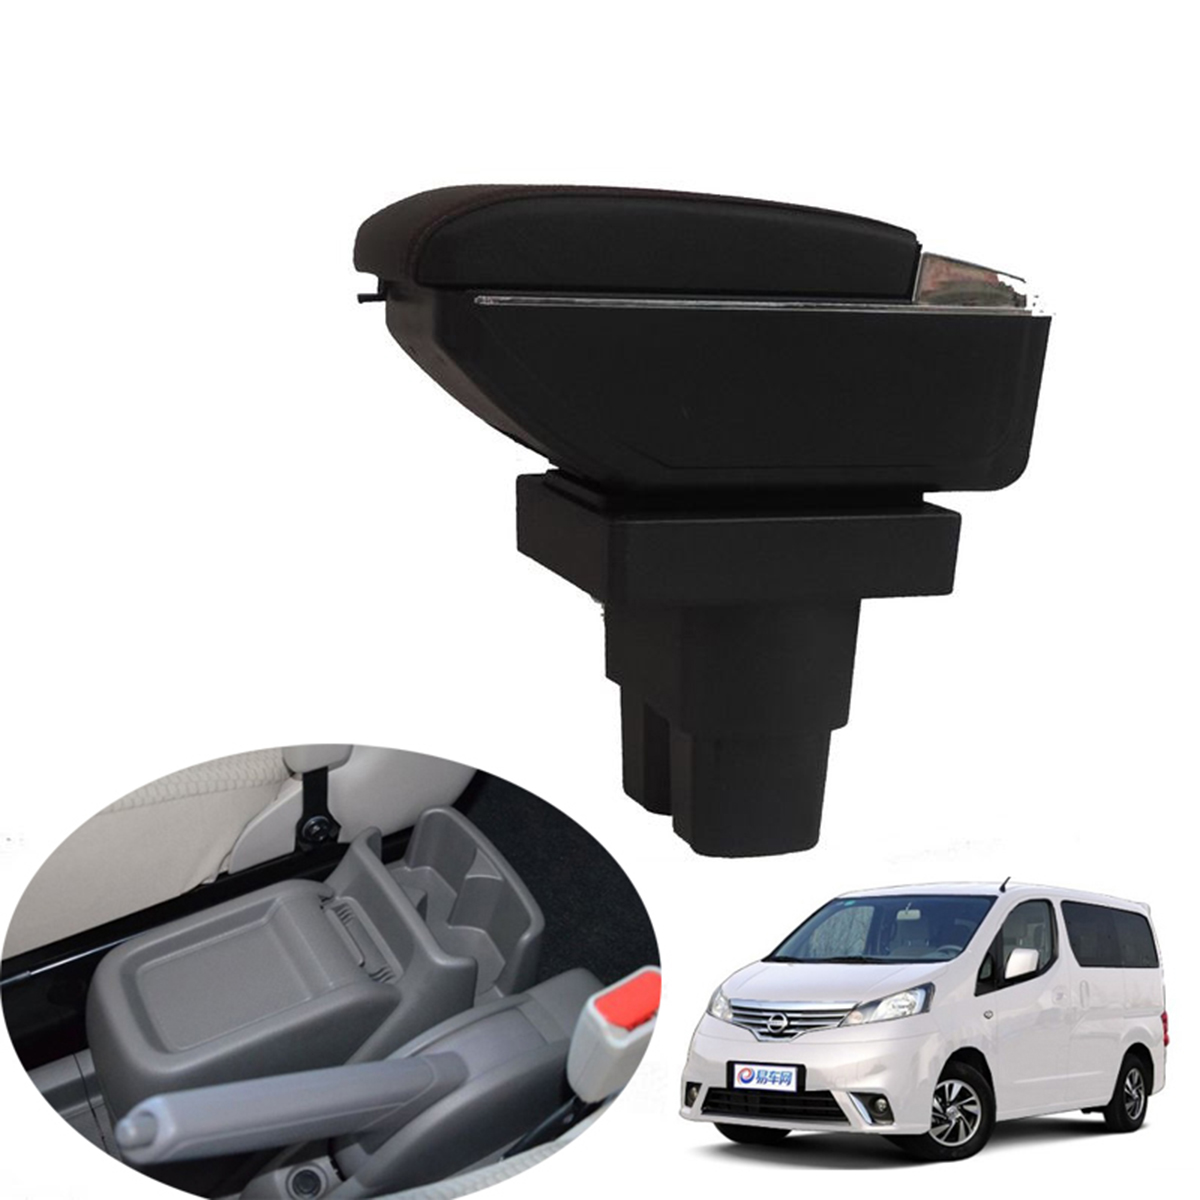 Car Armrest Central Store Content Storage Box For nissan nv200 2009 2010 2011 2012 2013 2014 2015 2016 Free Shipping стоимость